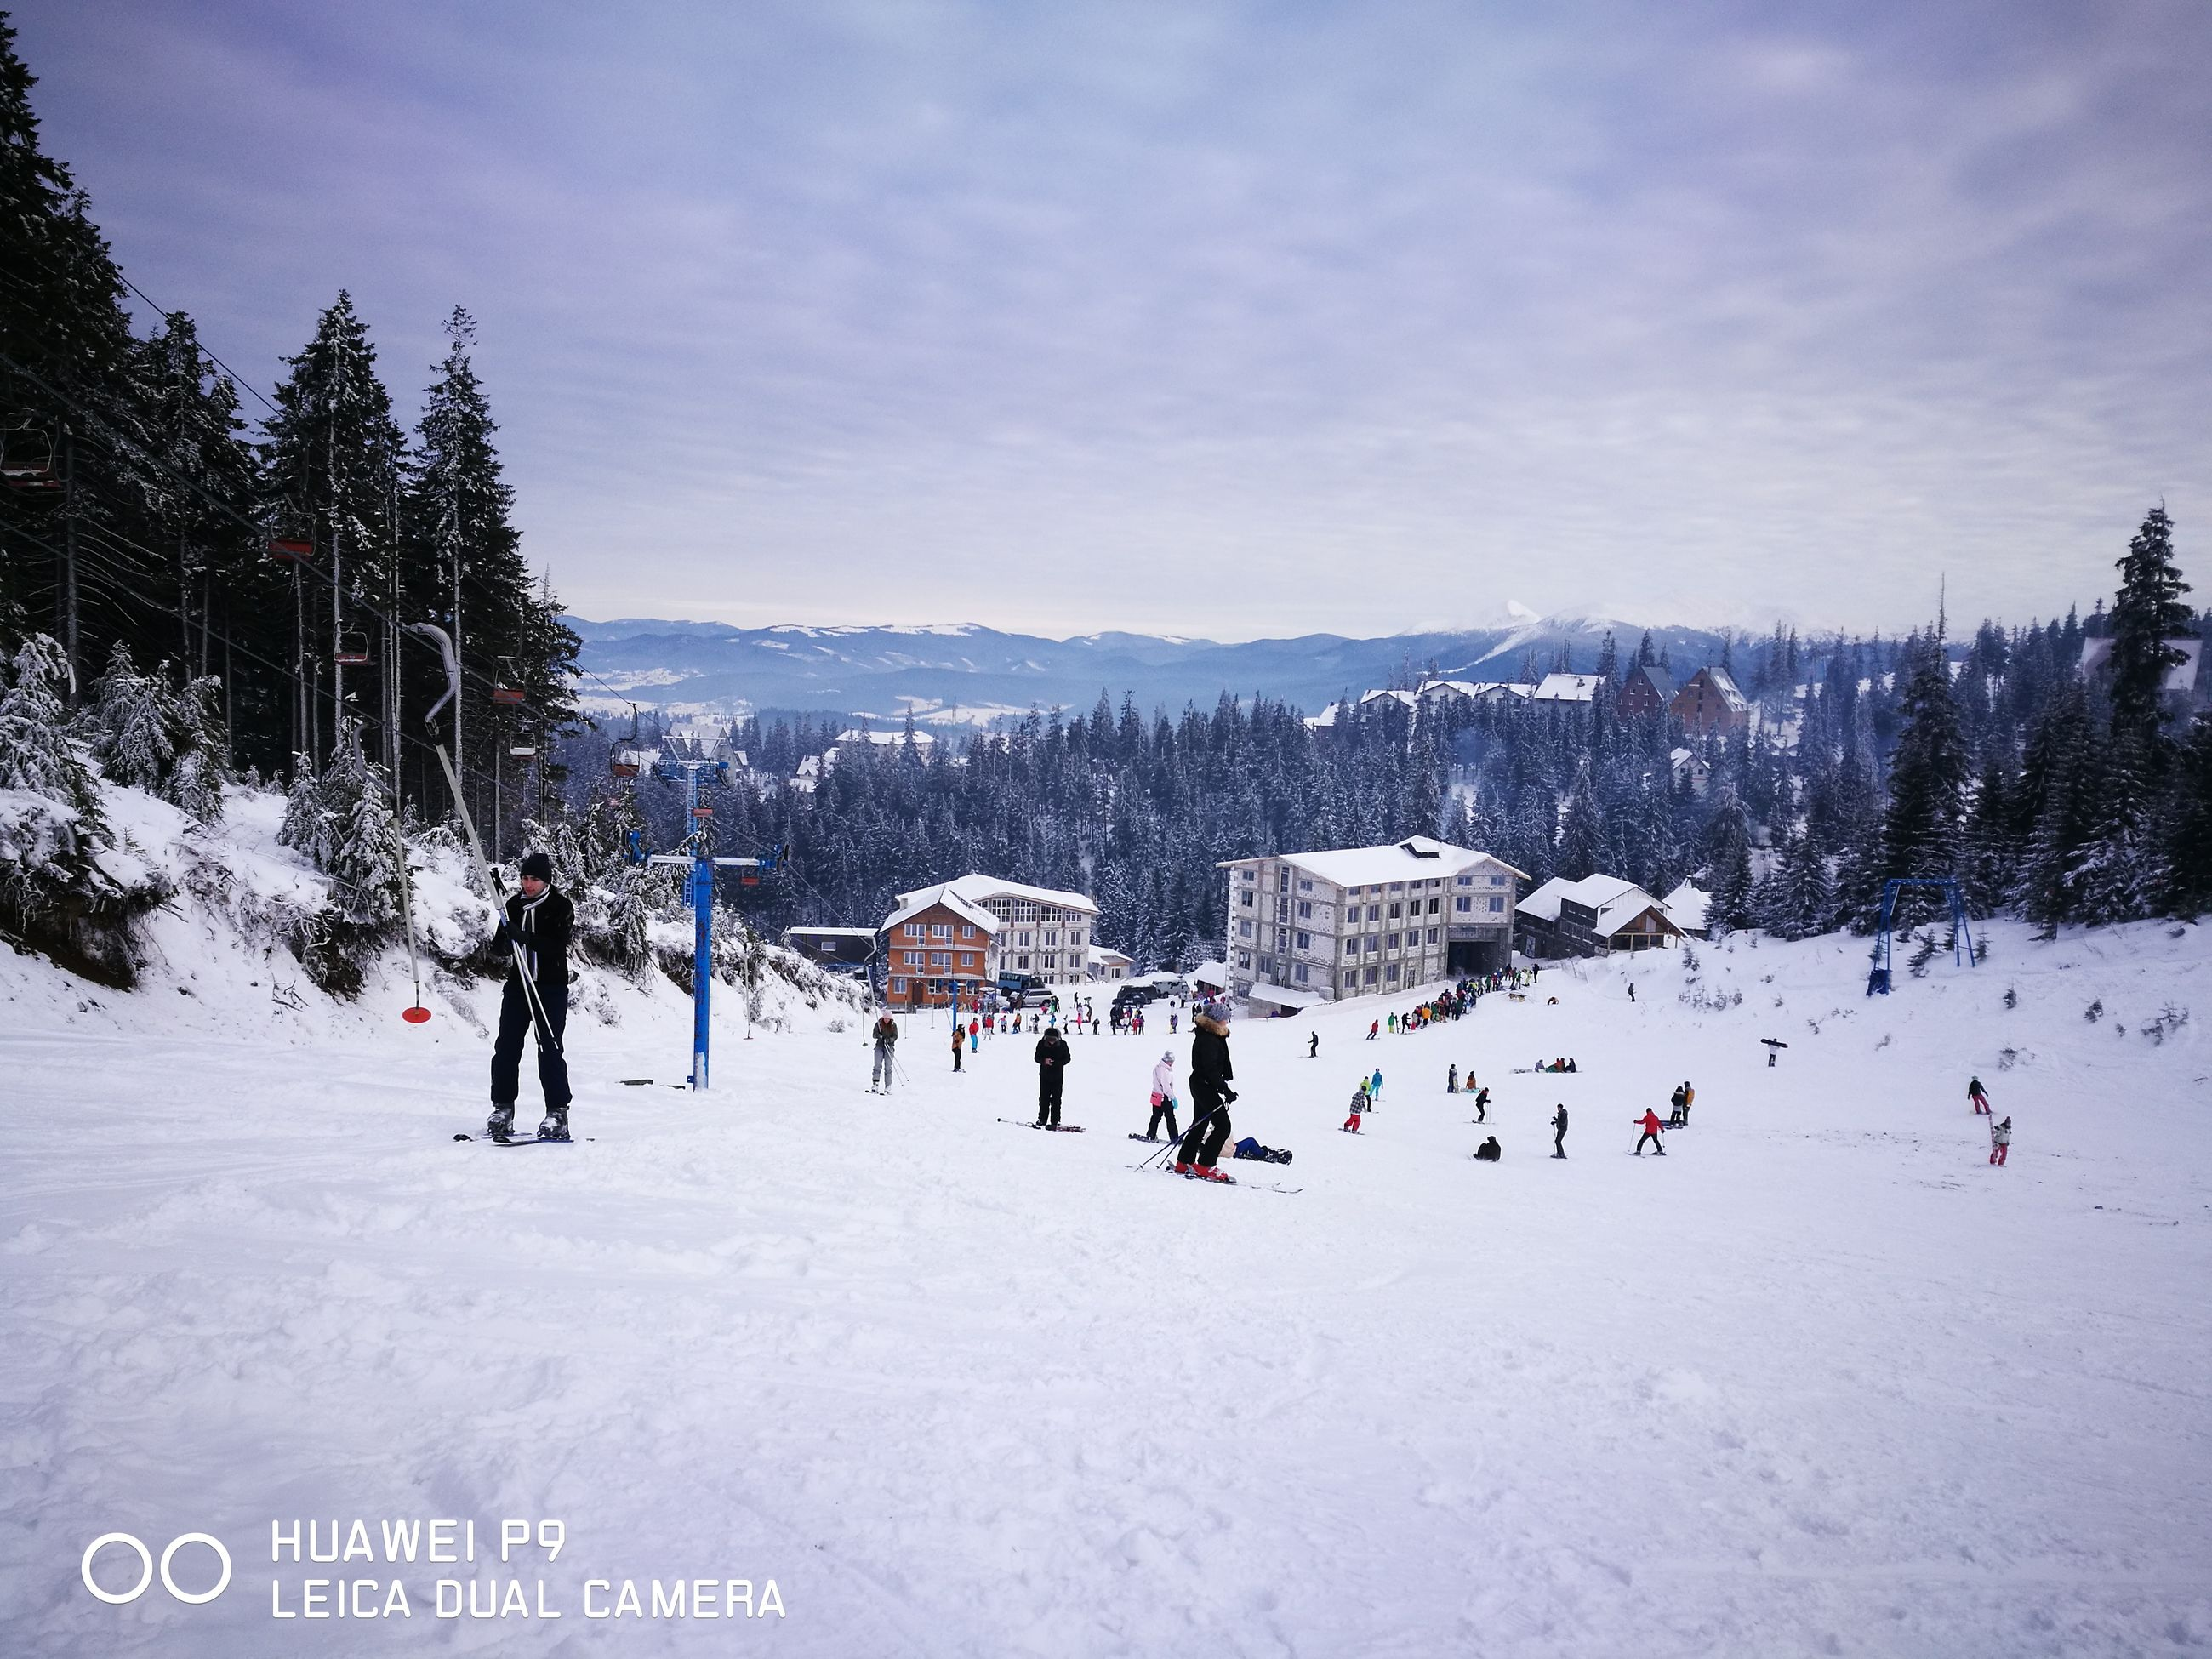 snow, cold temperature, winter, tree, winter sport, real people, large group of people, nature, beauty in nature, day, outdoors, sky, leisure activity, cloud - sky, scenics, sport, mountain, people, ice rink, adult